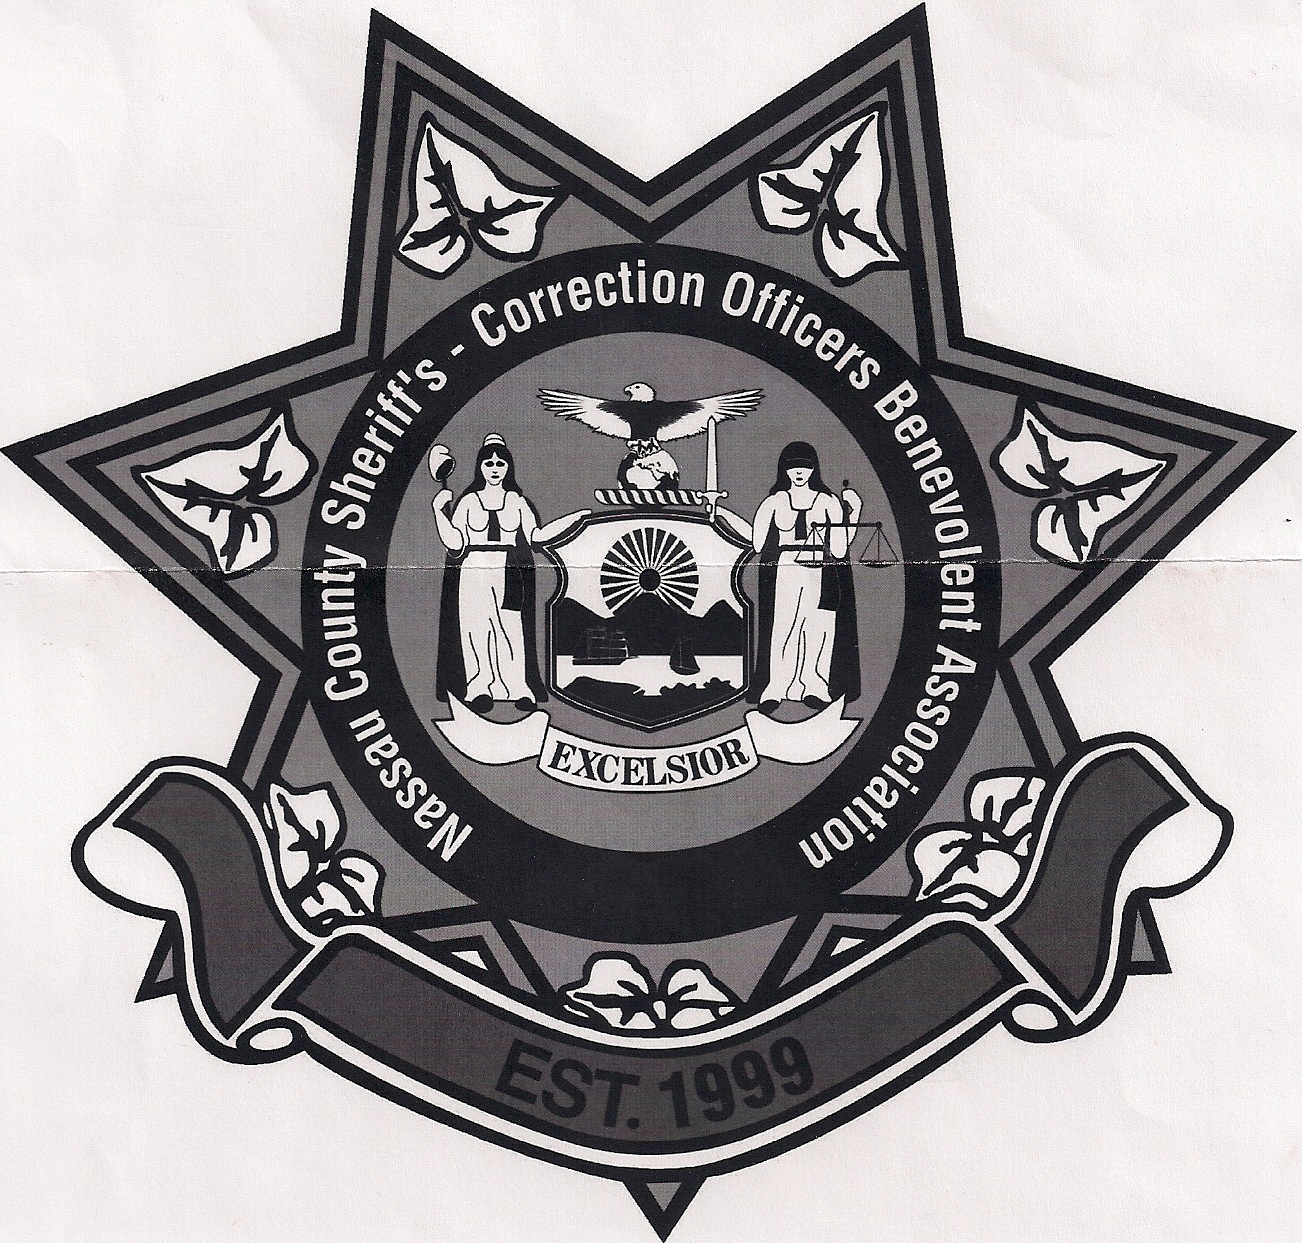 Sherriff's Association